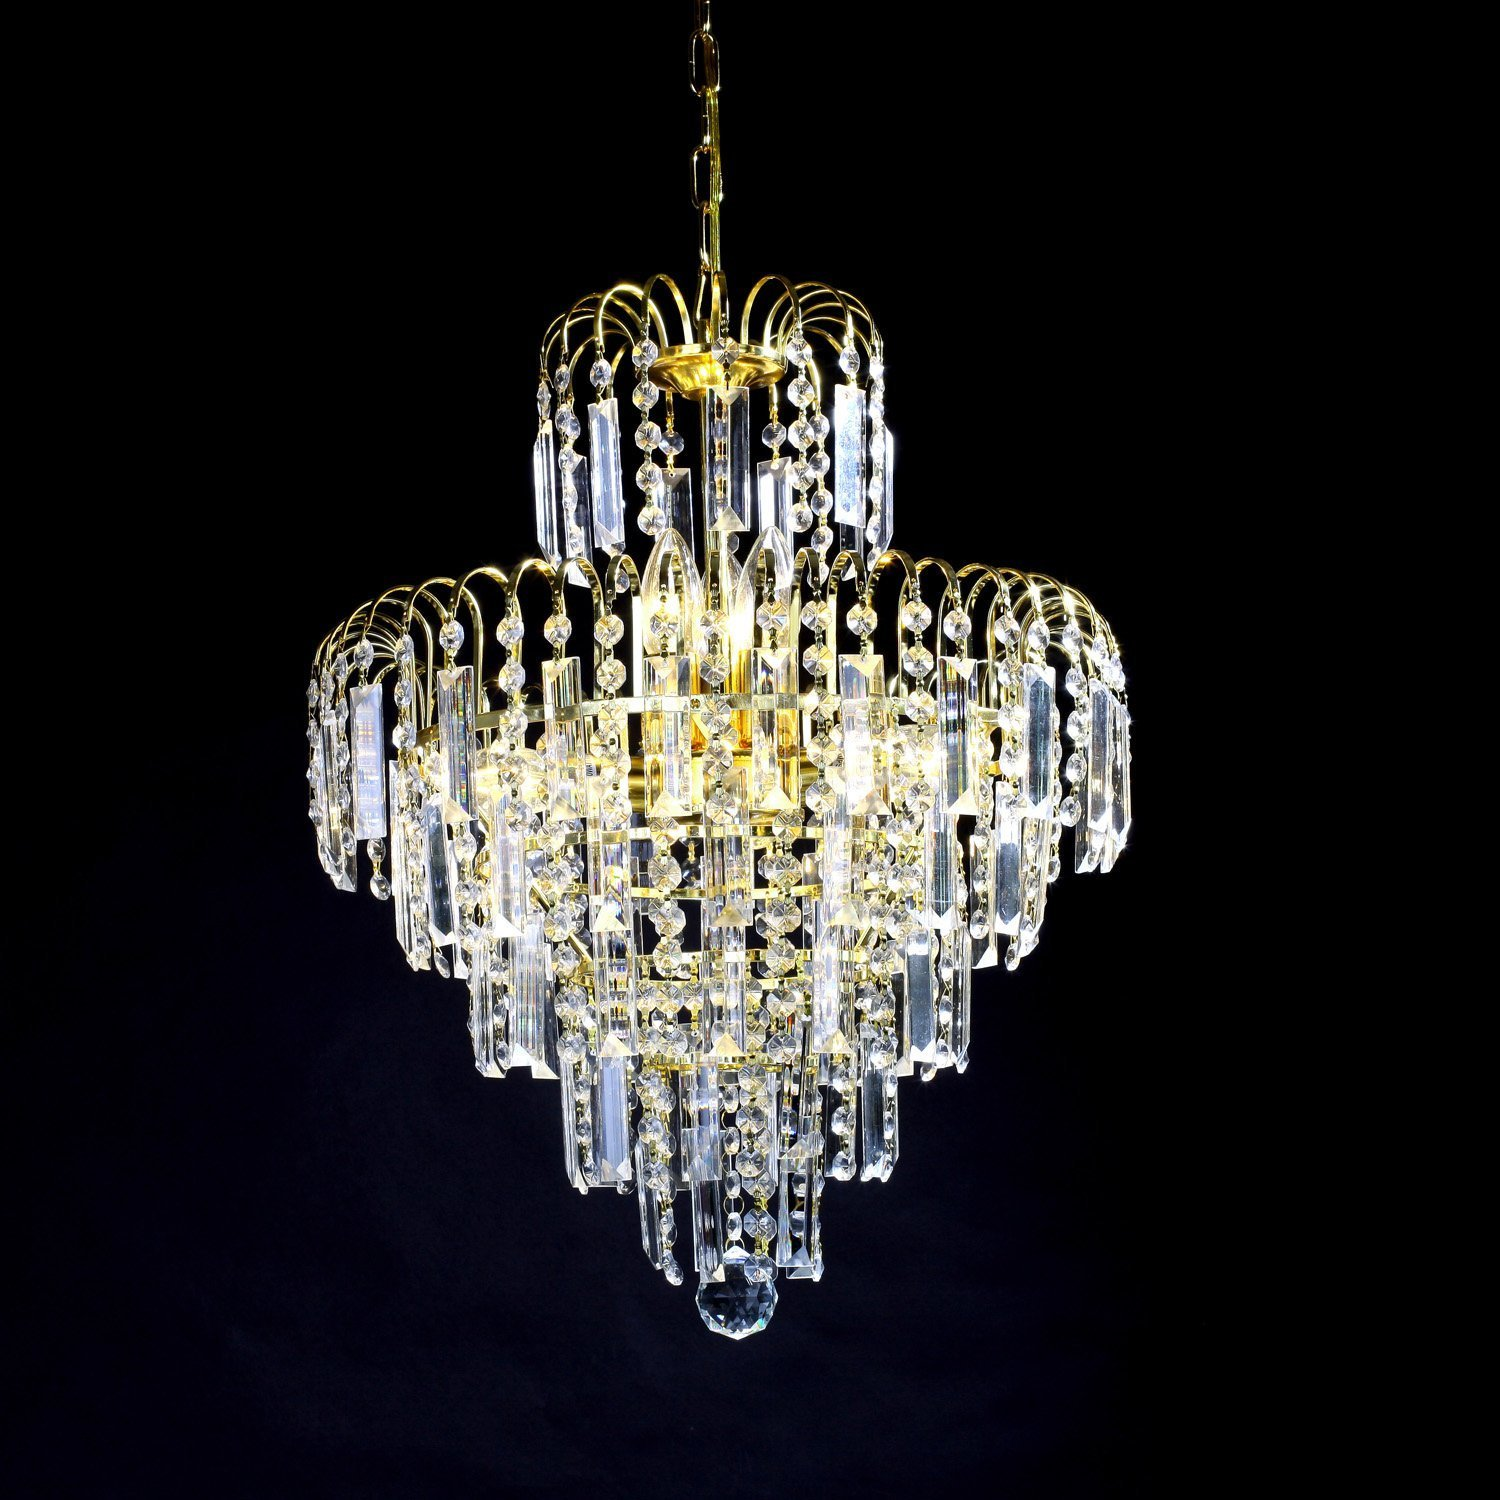 Lightinthebox European Style Luxury 6 Lights Chandelier In Crown Shape Crystal Home Ceiling Light Fixture Pendant Chandeliers Lighting For Dining